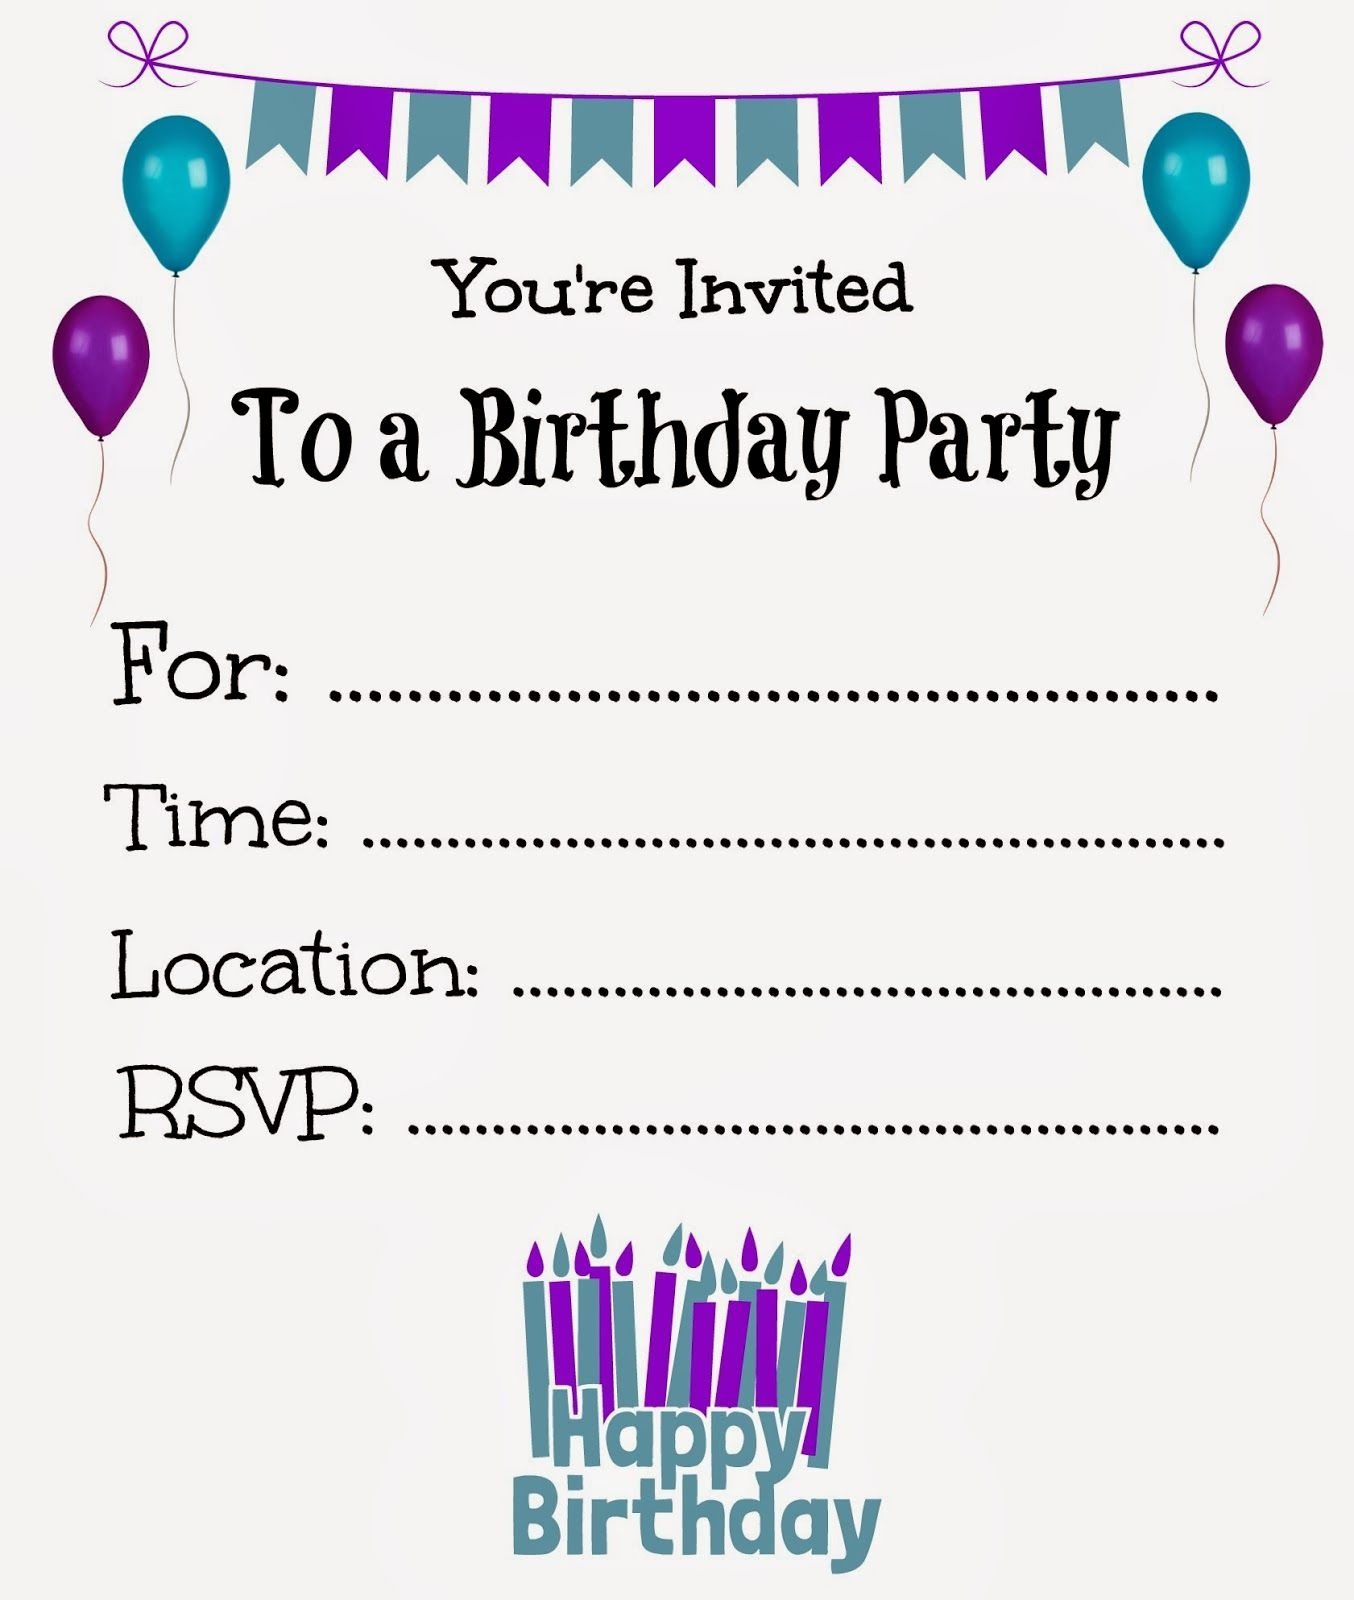 21st birthday card templates free ; 21st-birthday-invitation-templates-free-best-of-21st-birthday-invitation-templates-where-to-make-christmas-cards-of-21st-birthday-invitation-templates-free